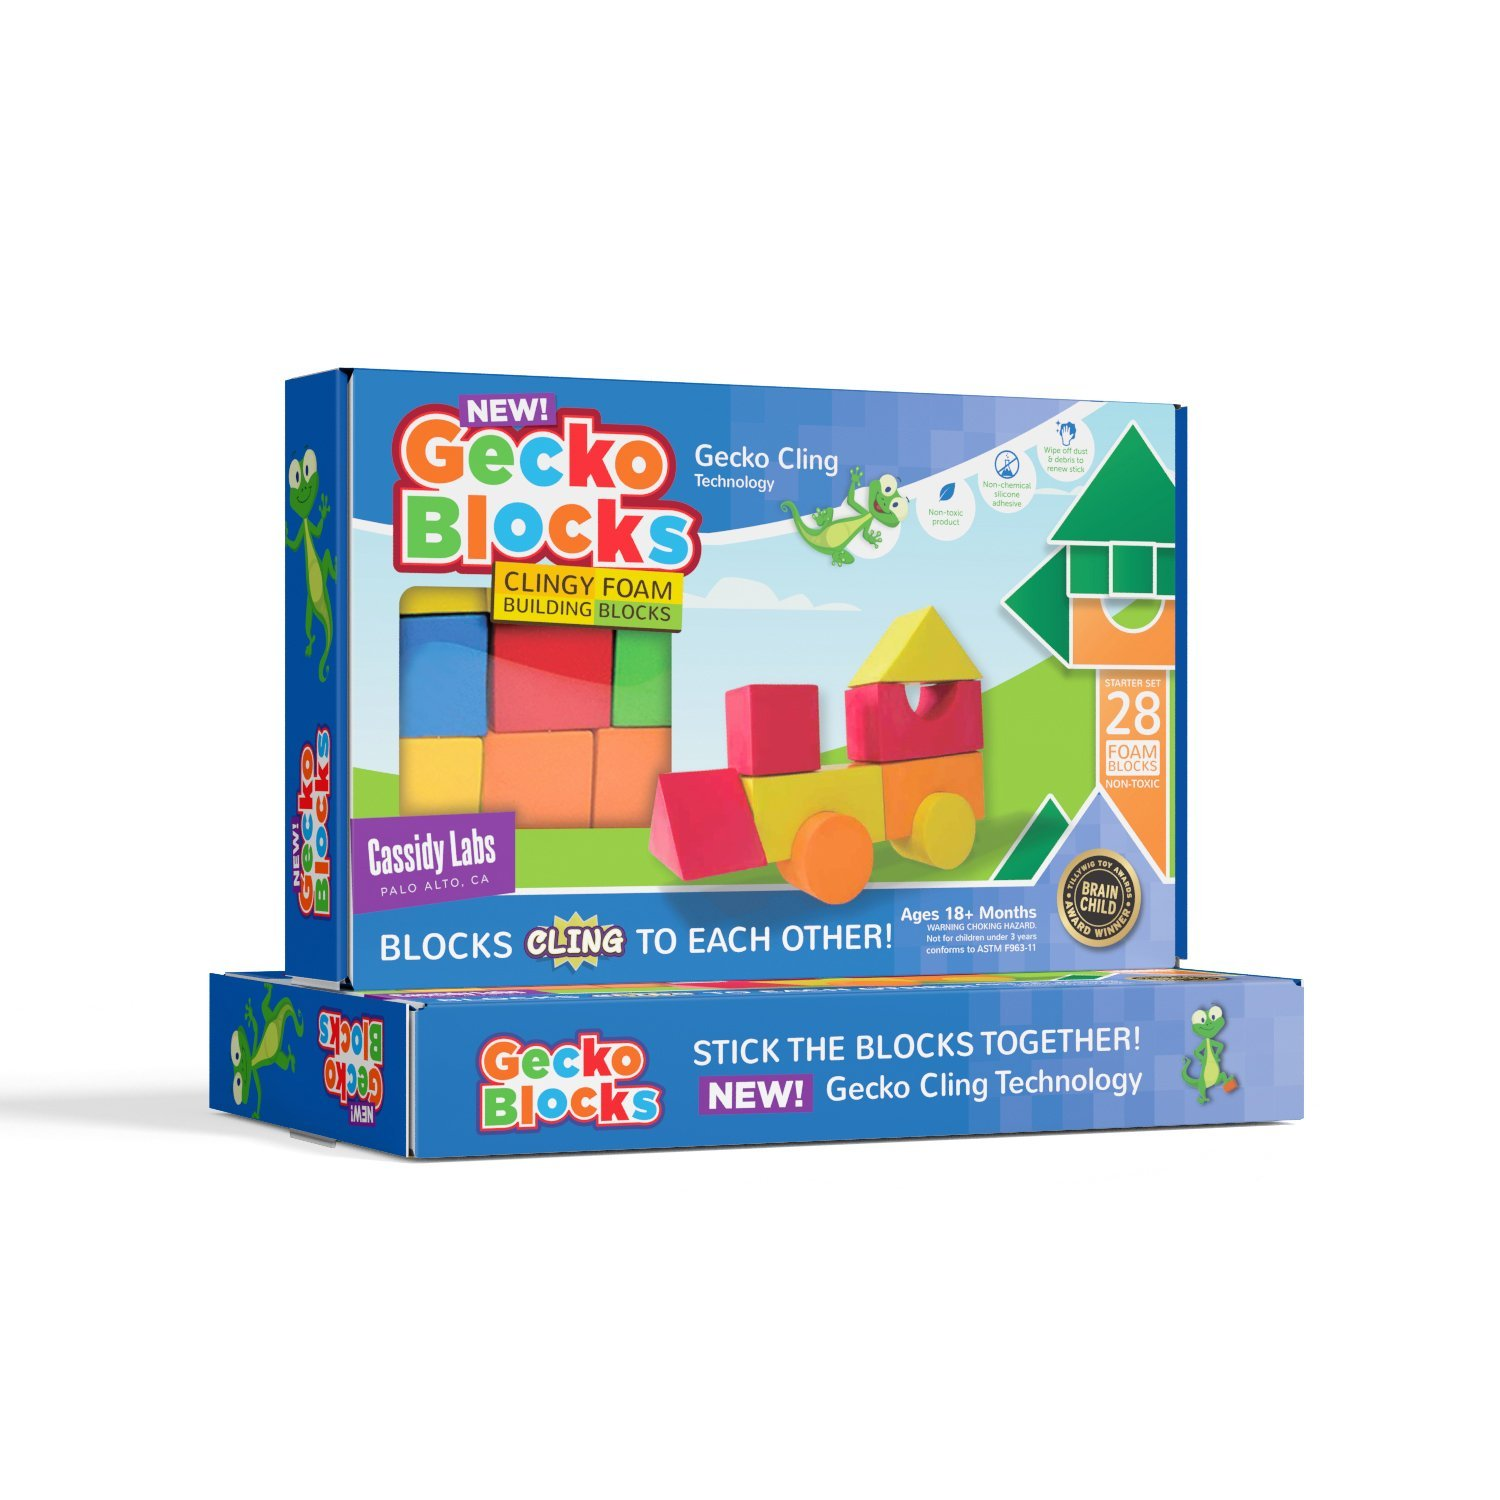 Gecko Blocks Sticky Block Construction Toy for Kids Works in Bath and on Windows